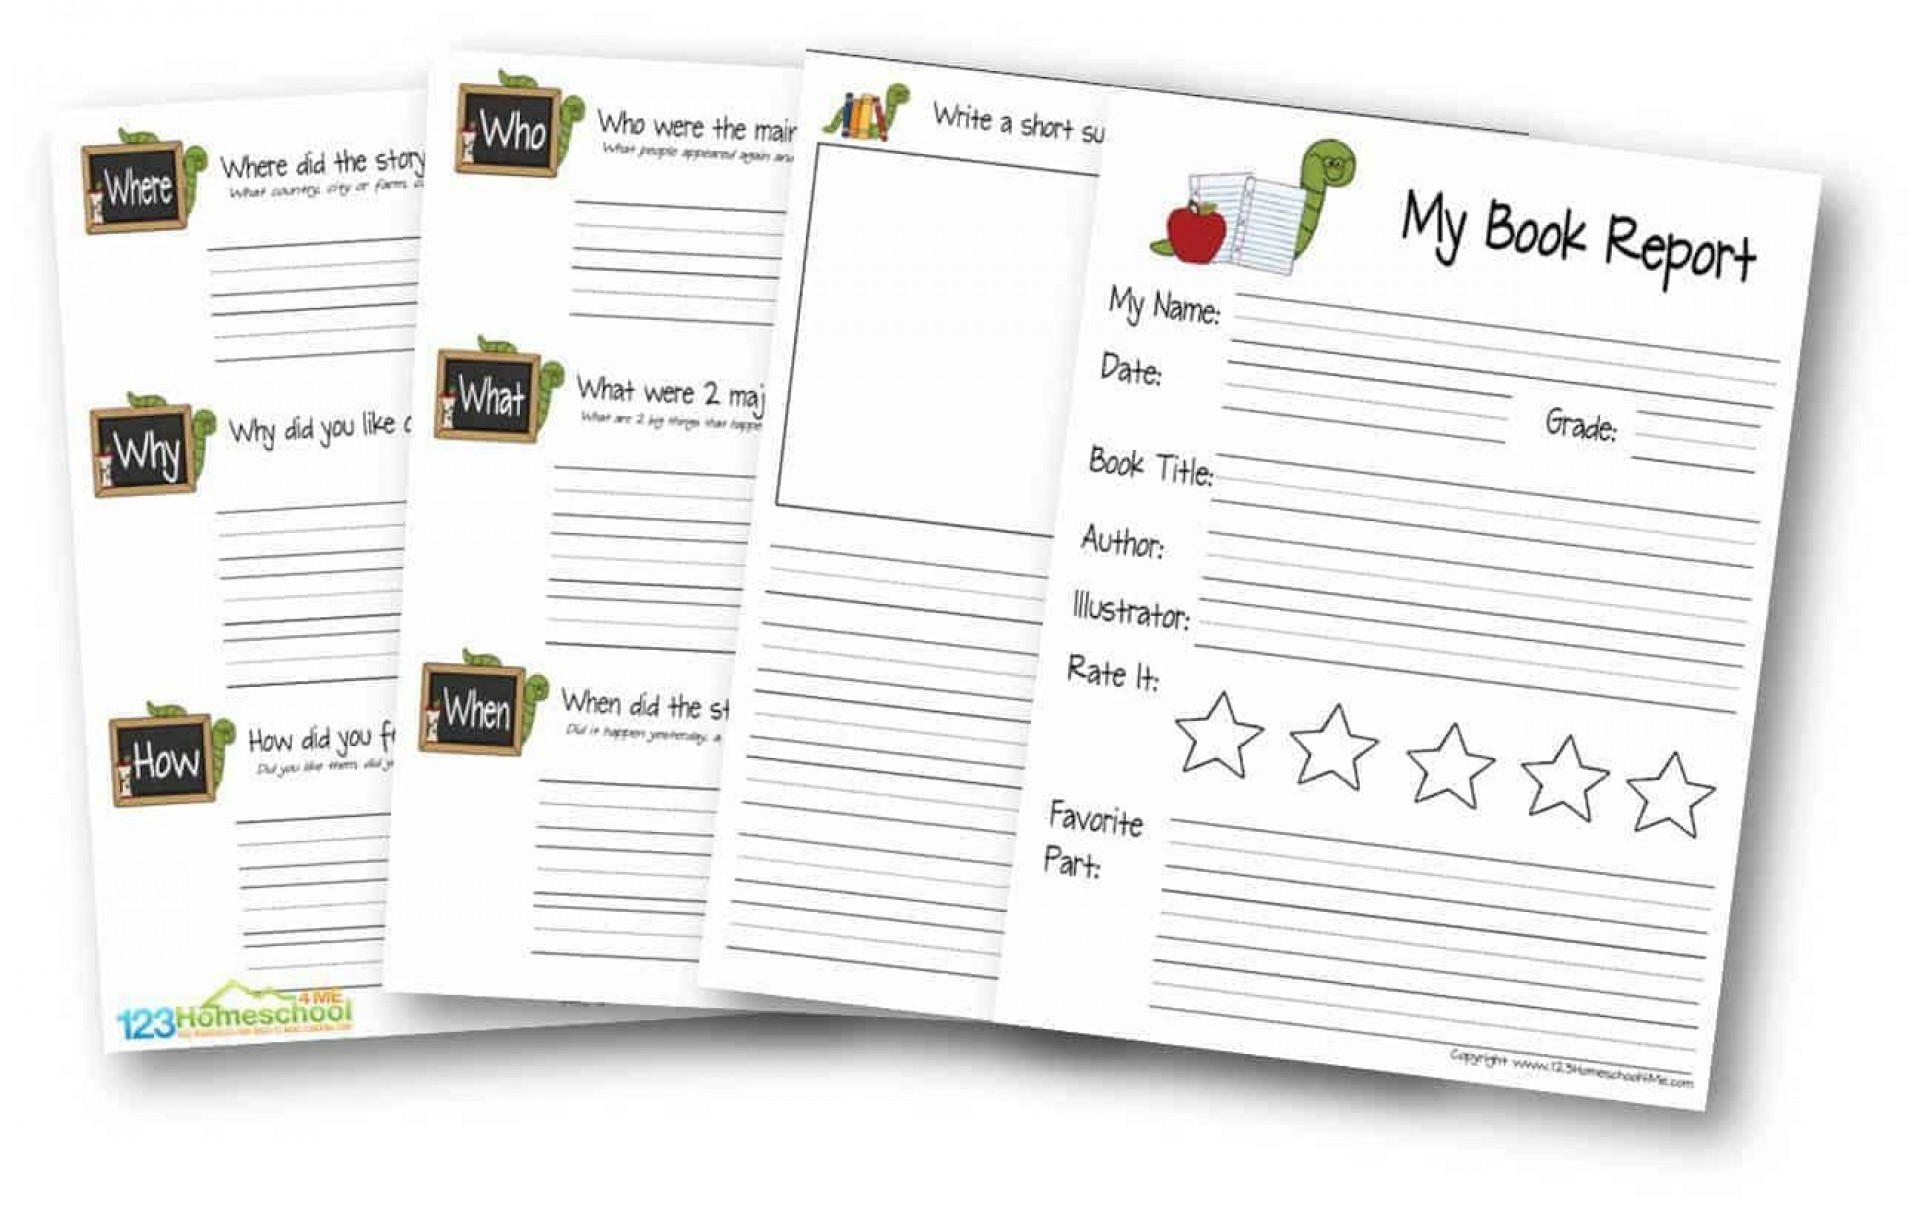 009 Stupendou Free Printable Book Report Template For 6th Grade Image 1920